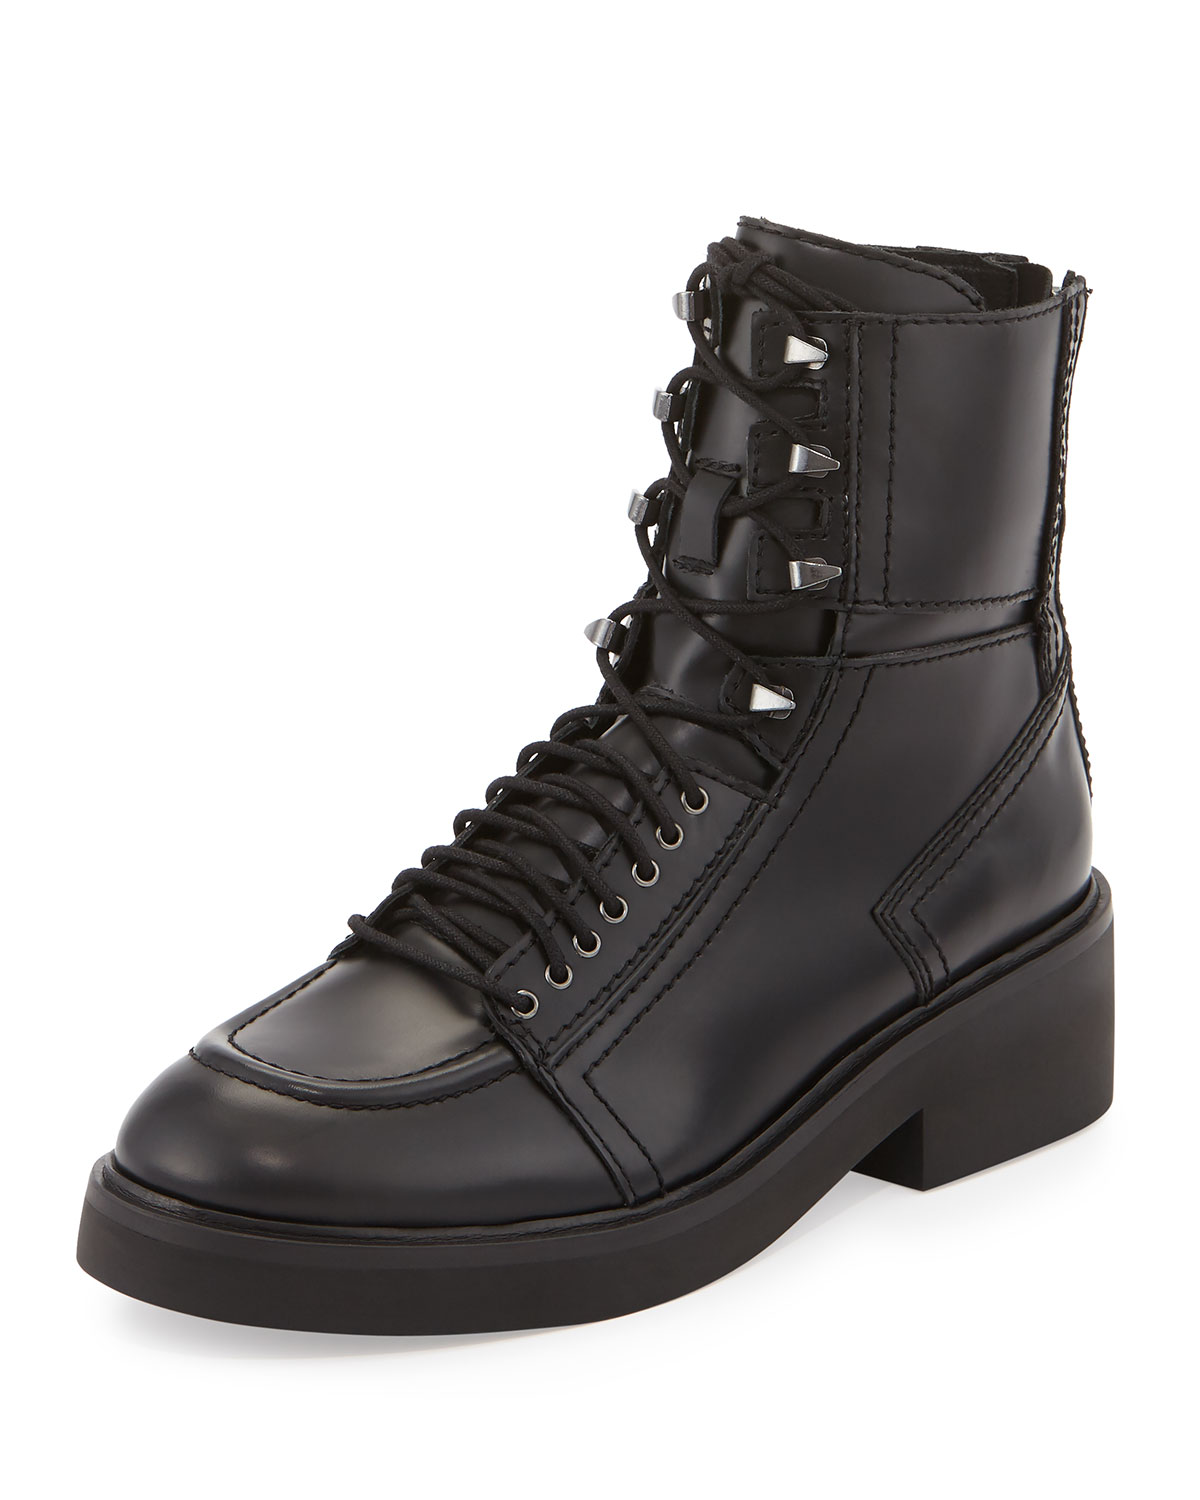 Neal Leather Combat Boots, Black